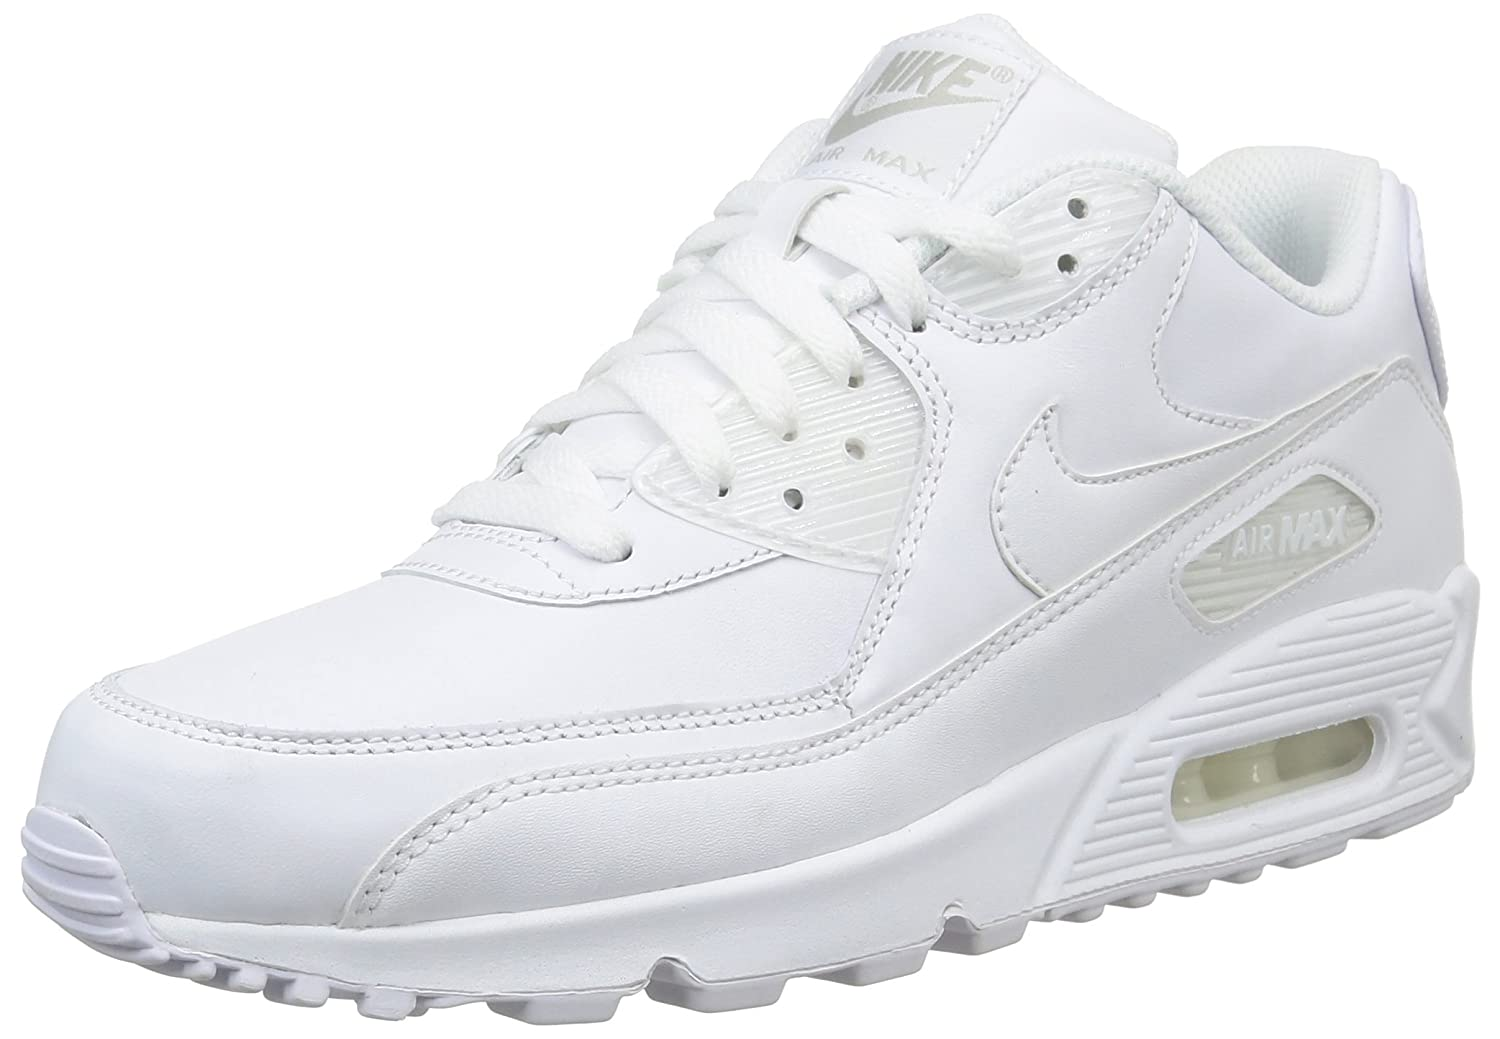 Fresh Nike Air Max 90 Uomo moda